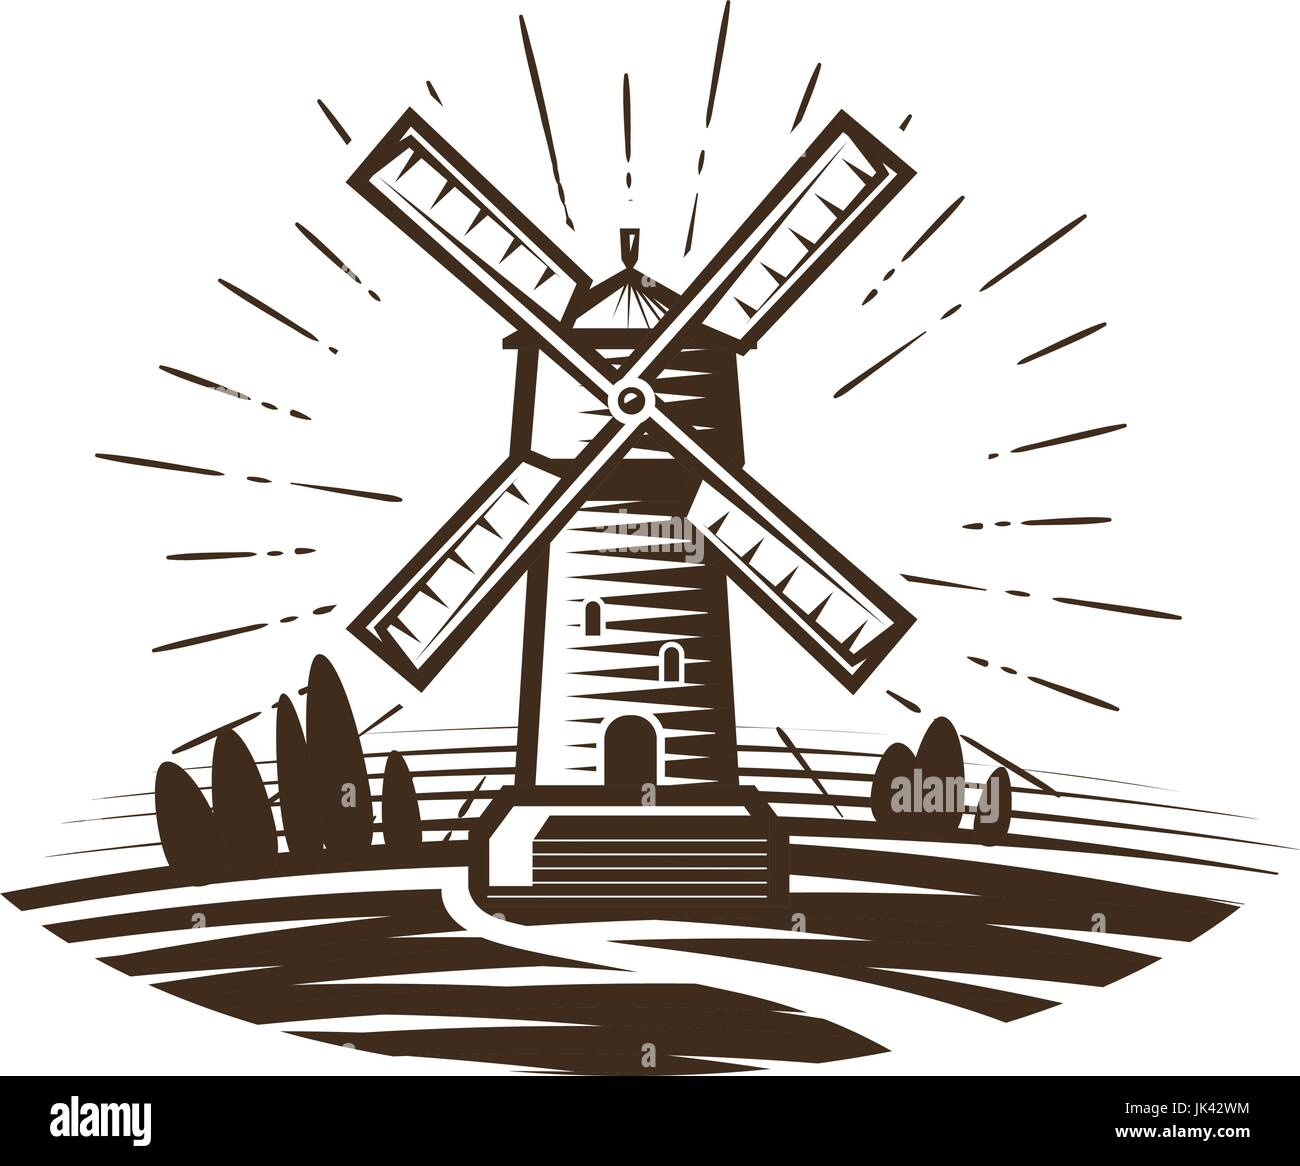 Mill, windmill logo or label. Farm, agriculture, bakery, bread icon. Vintage vector illustration - Stock Vector